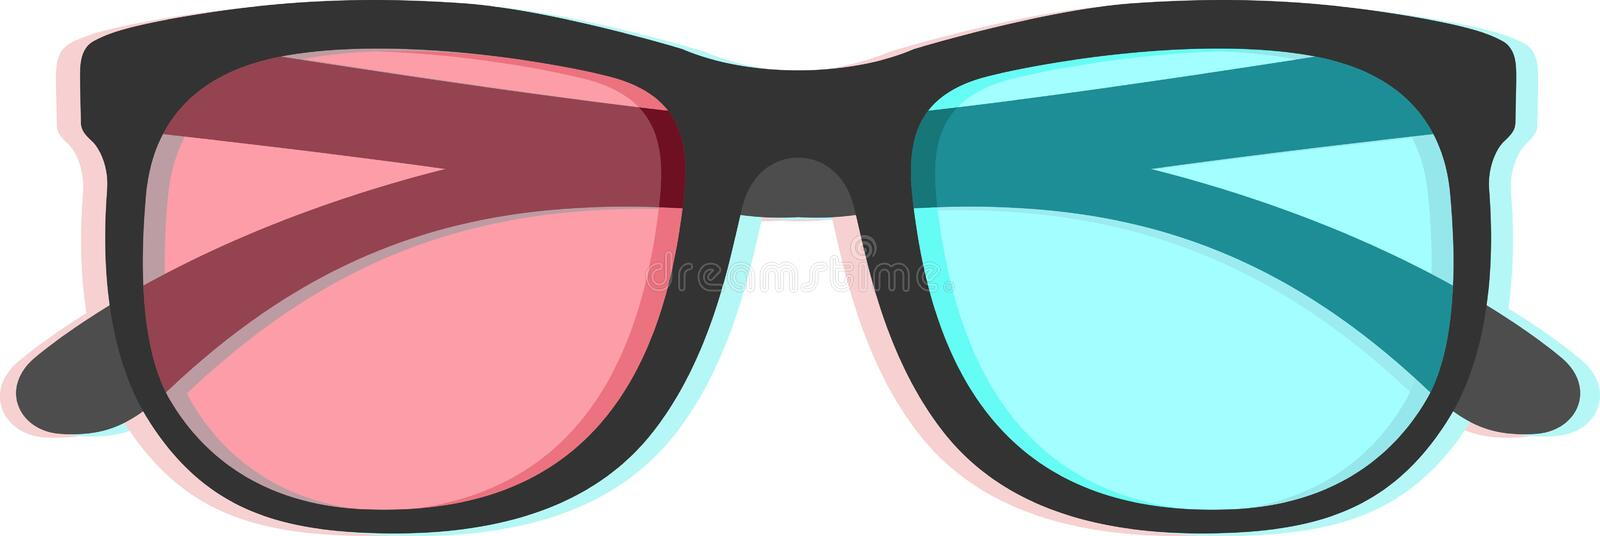 3d Glasses With Chromatic Aberration Royalty Free Stock Image